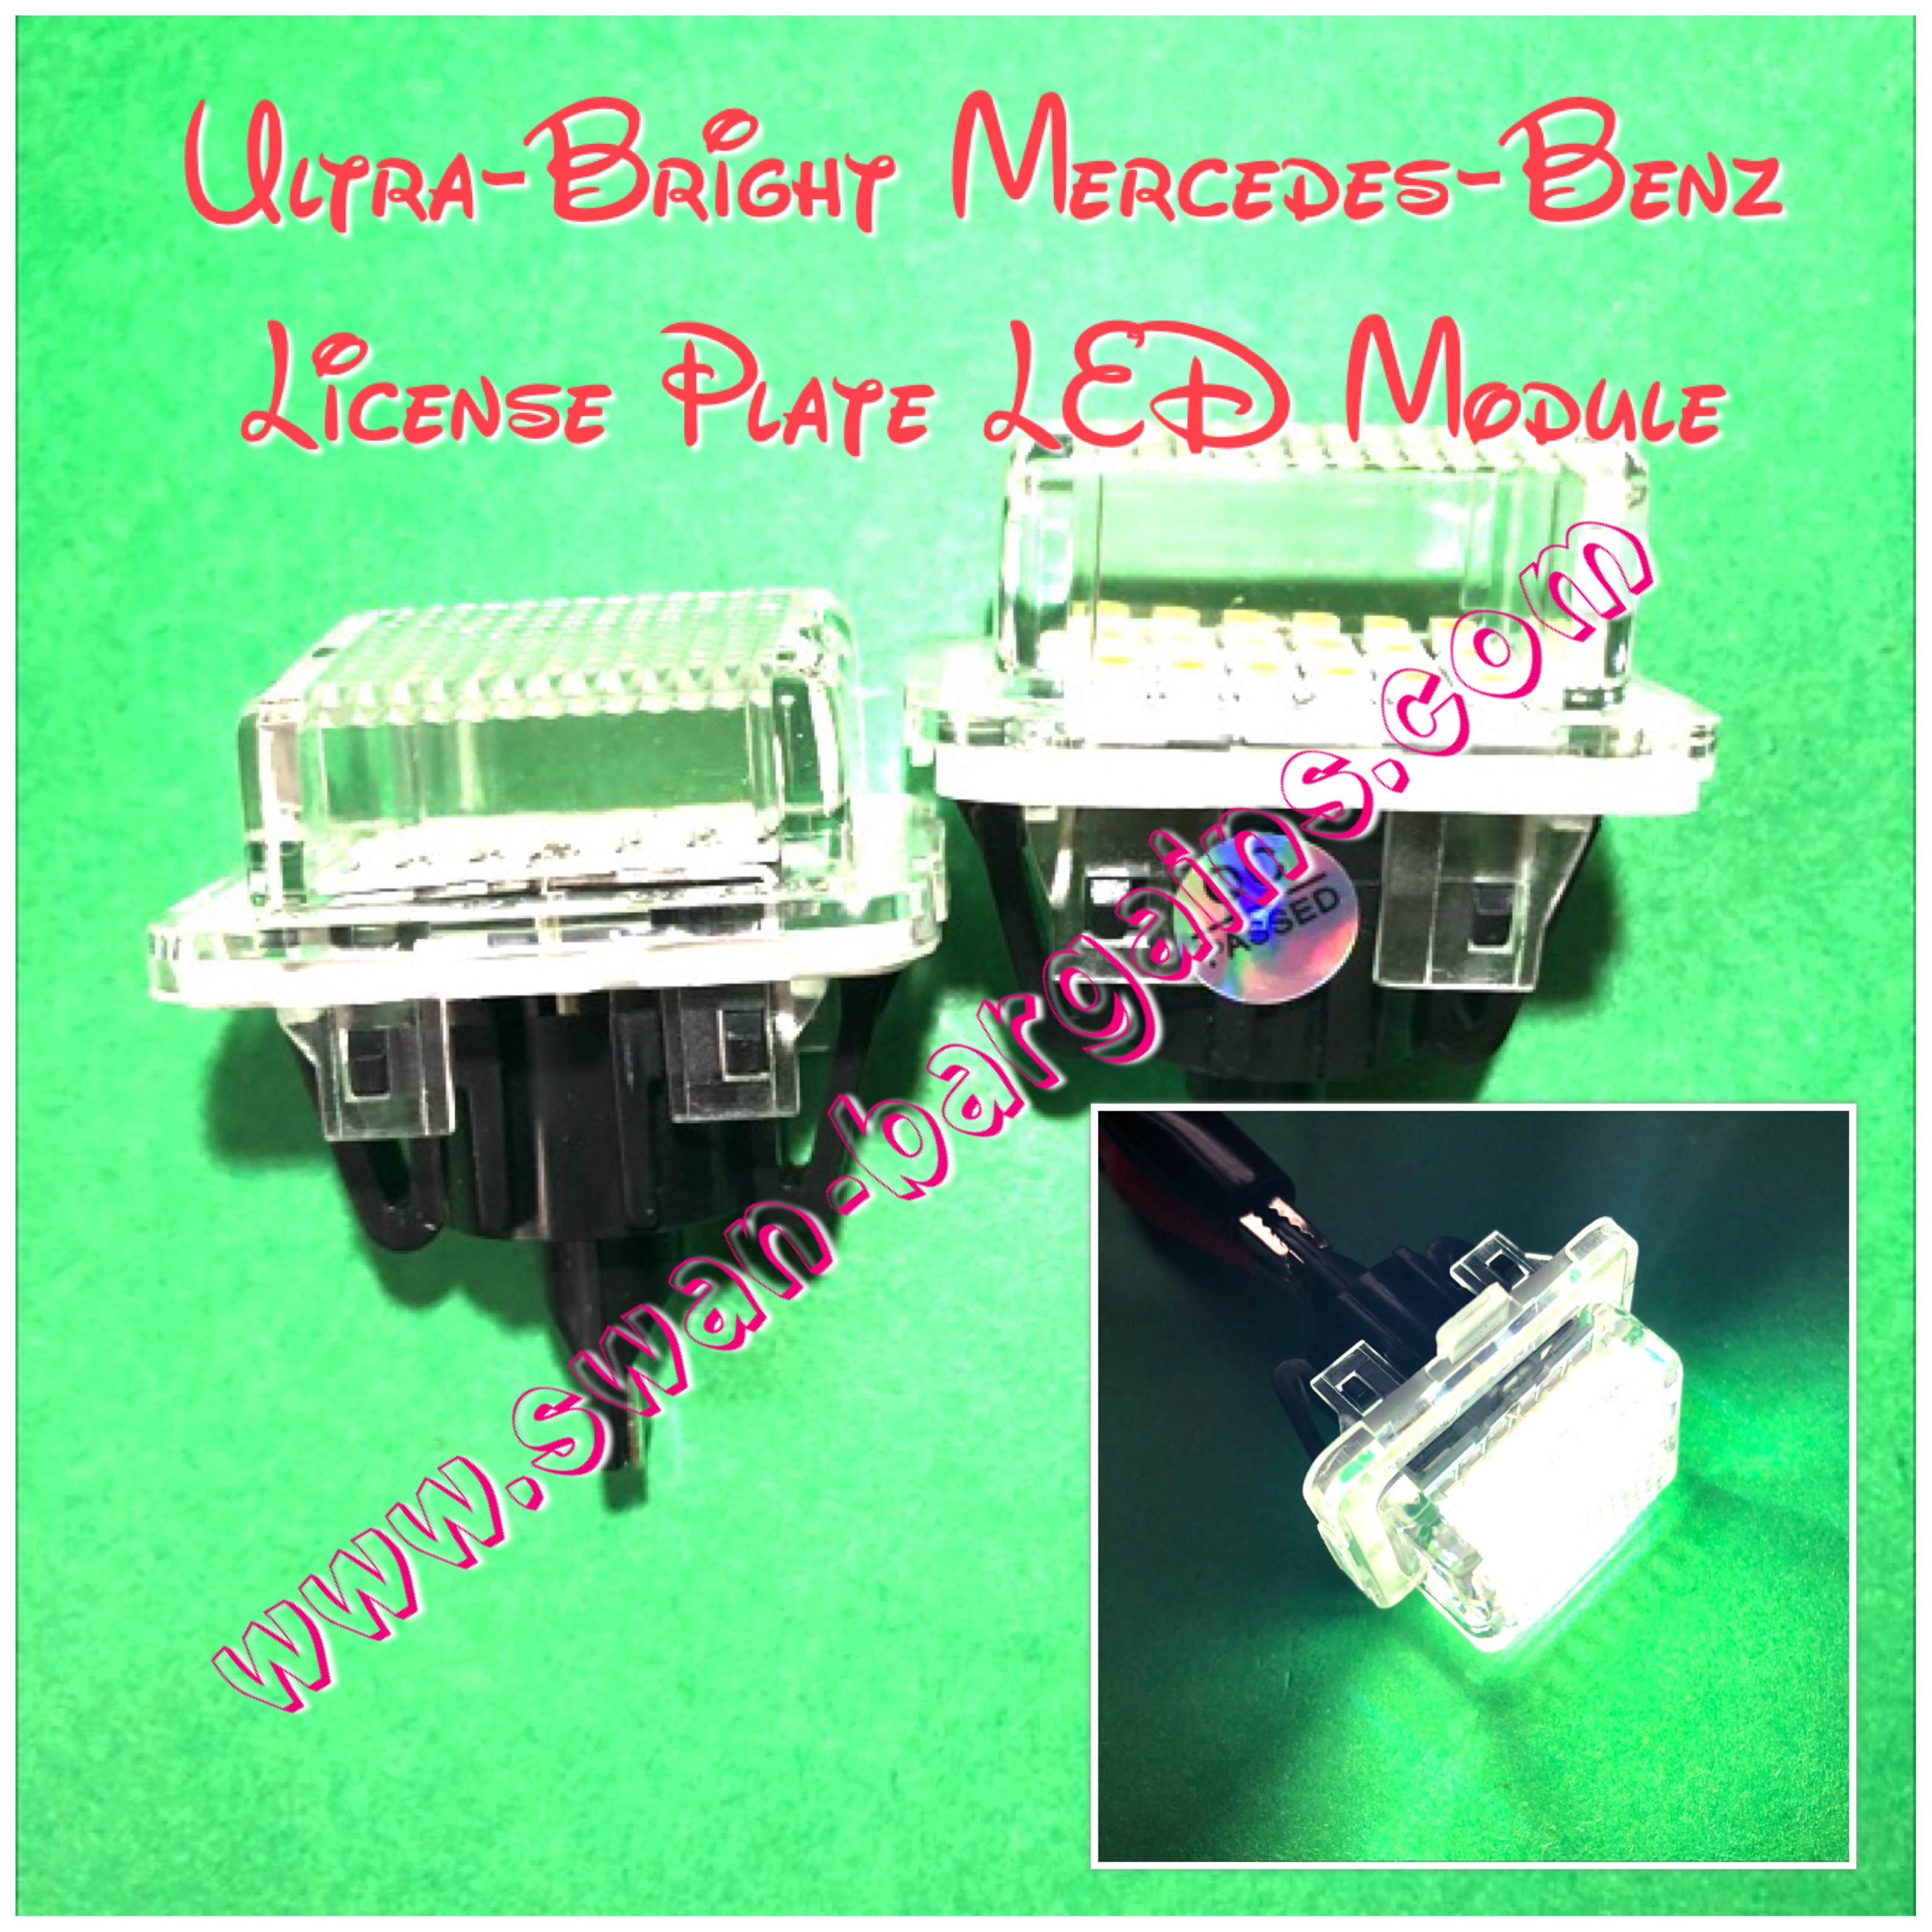 Mercedes-Benz Error-Free Ultra-Bright LED License Plate Light Module